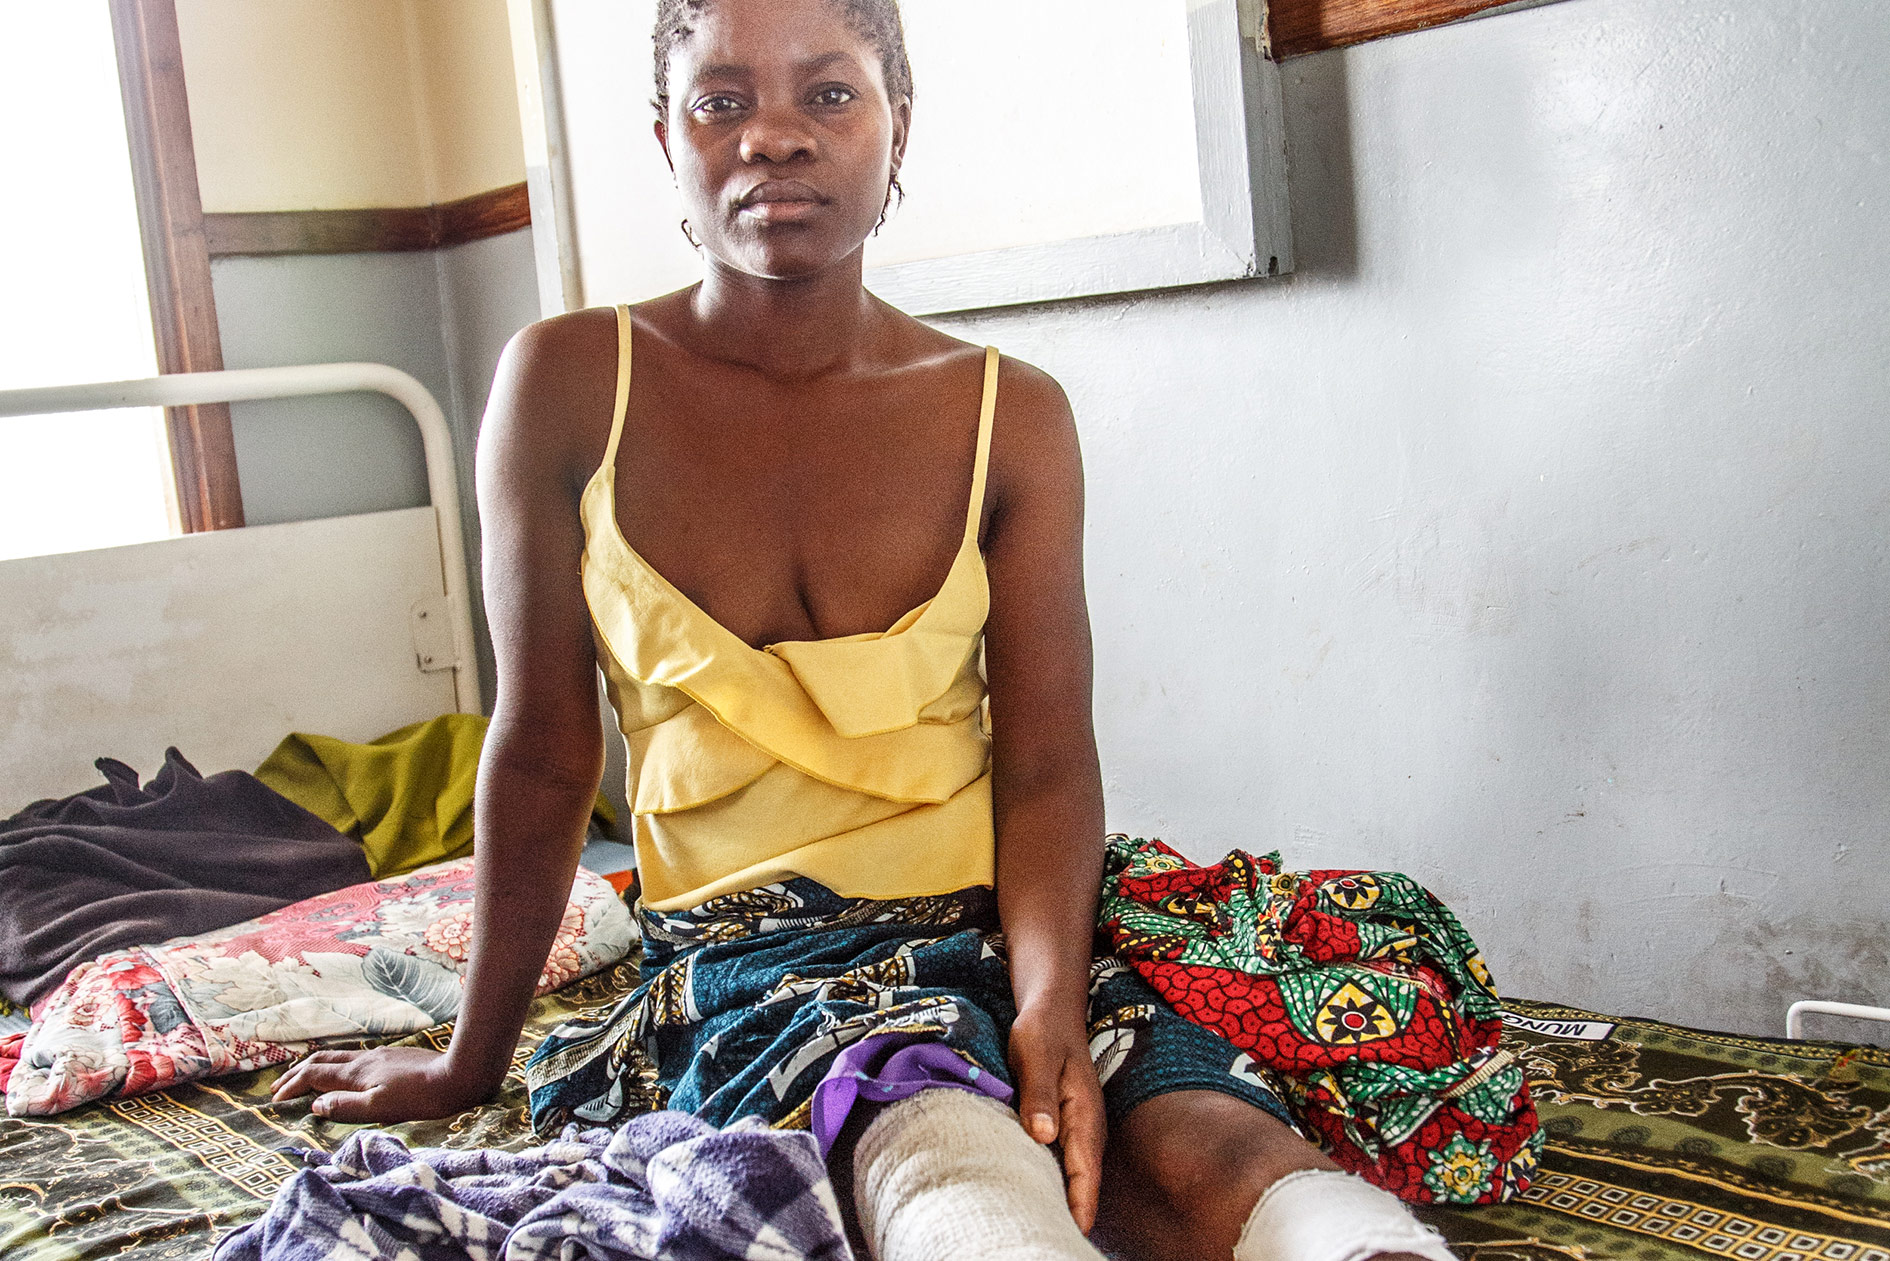 Regina Phirie, 24-years-old, had a pot with burning fluid fall over her legs. Both legs are burned to the third degree. Regina's mother keeps her company in the hospital and reads her from the Bible.